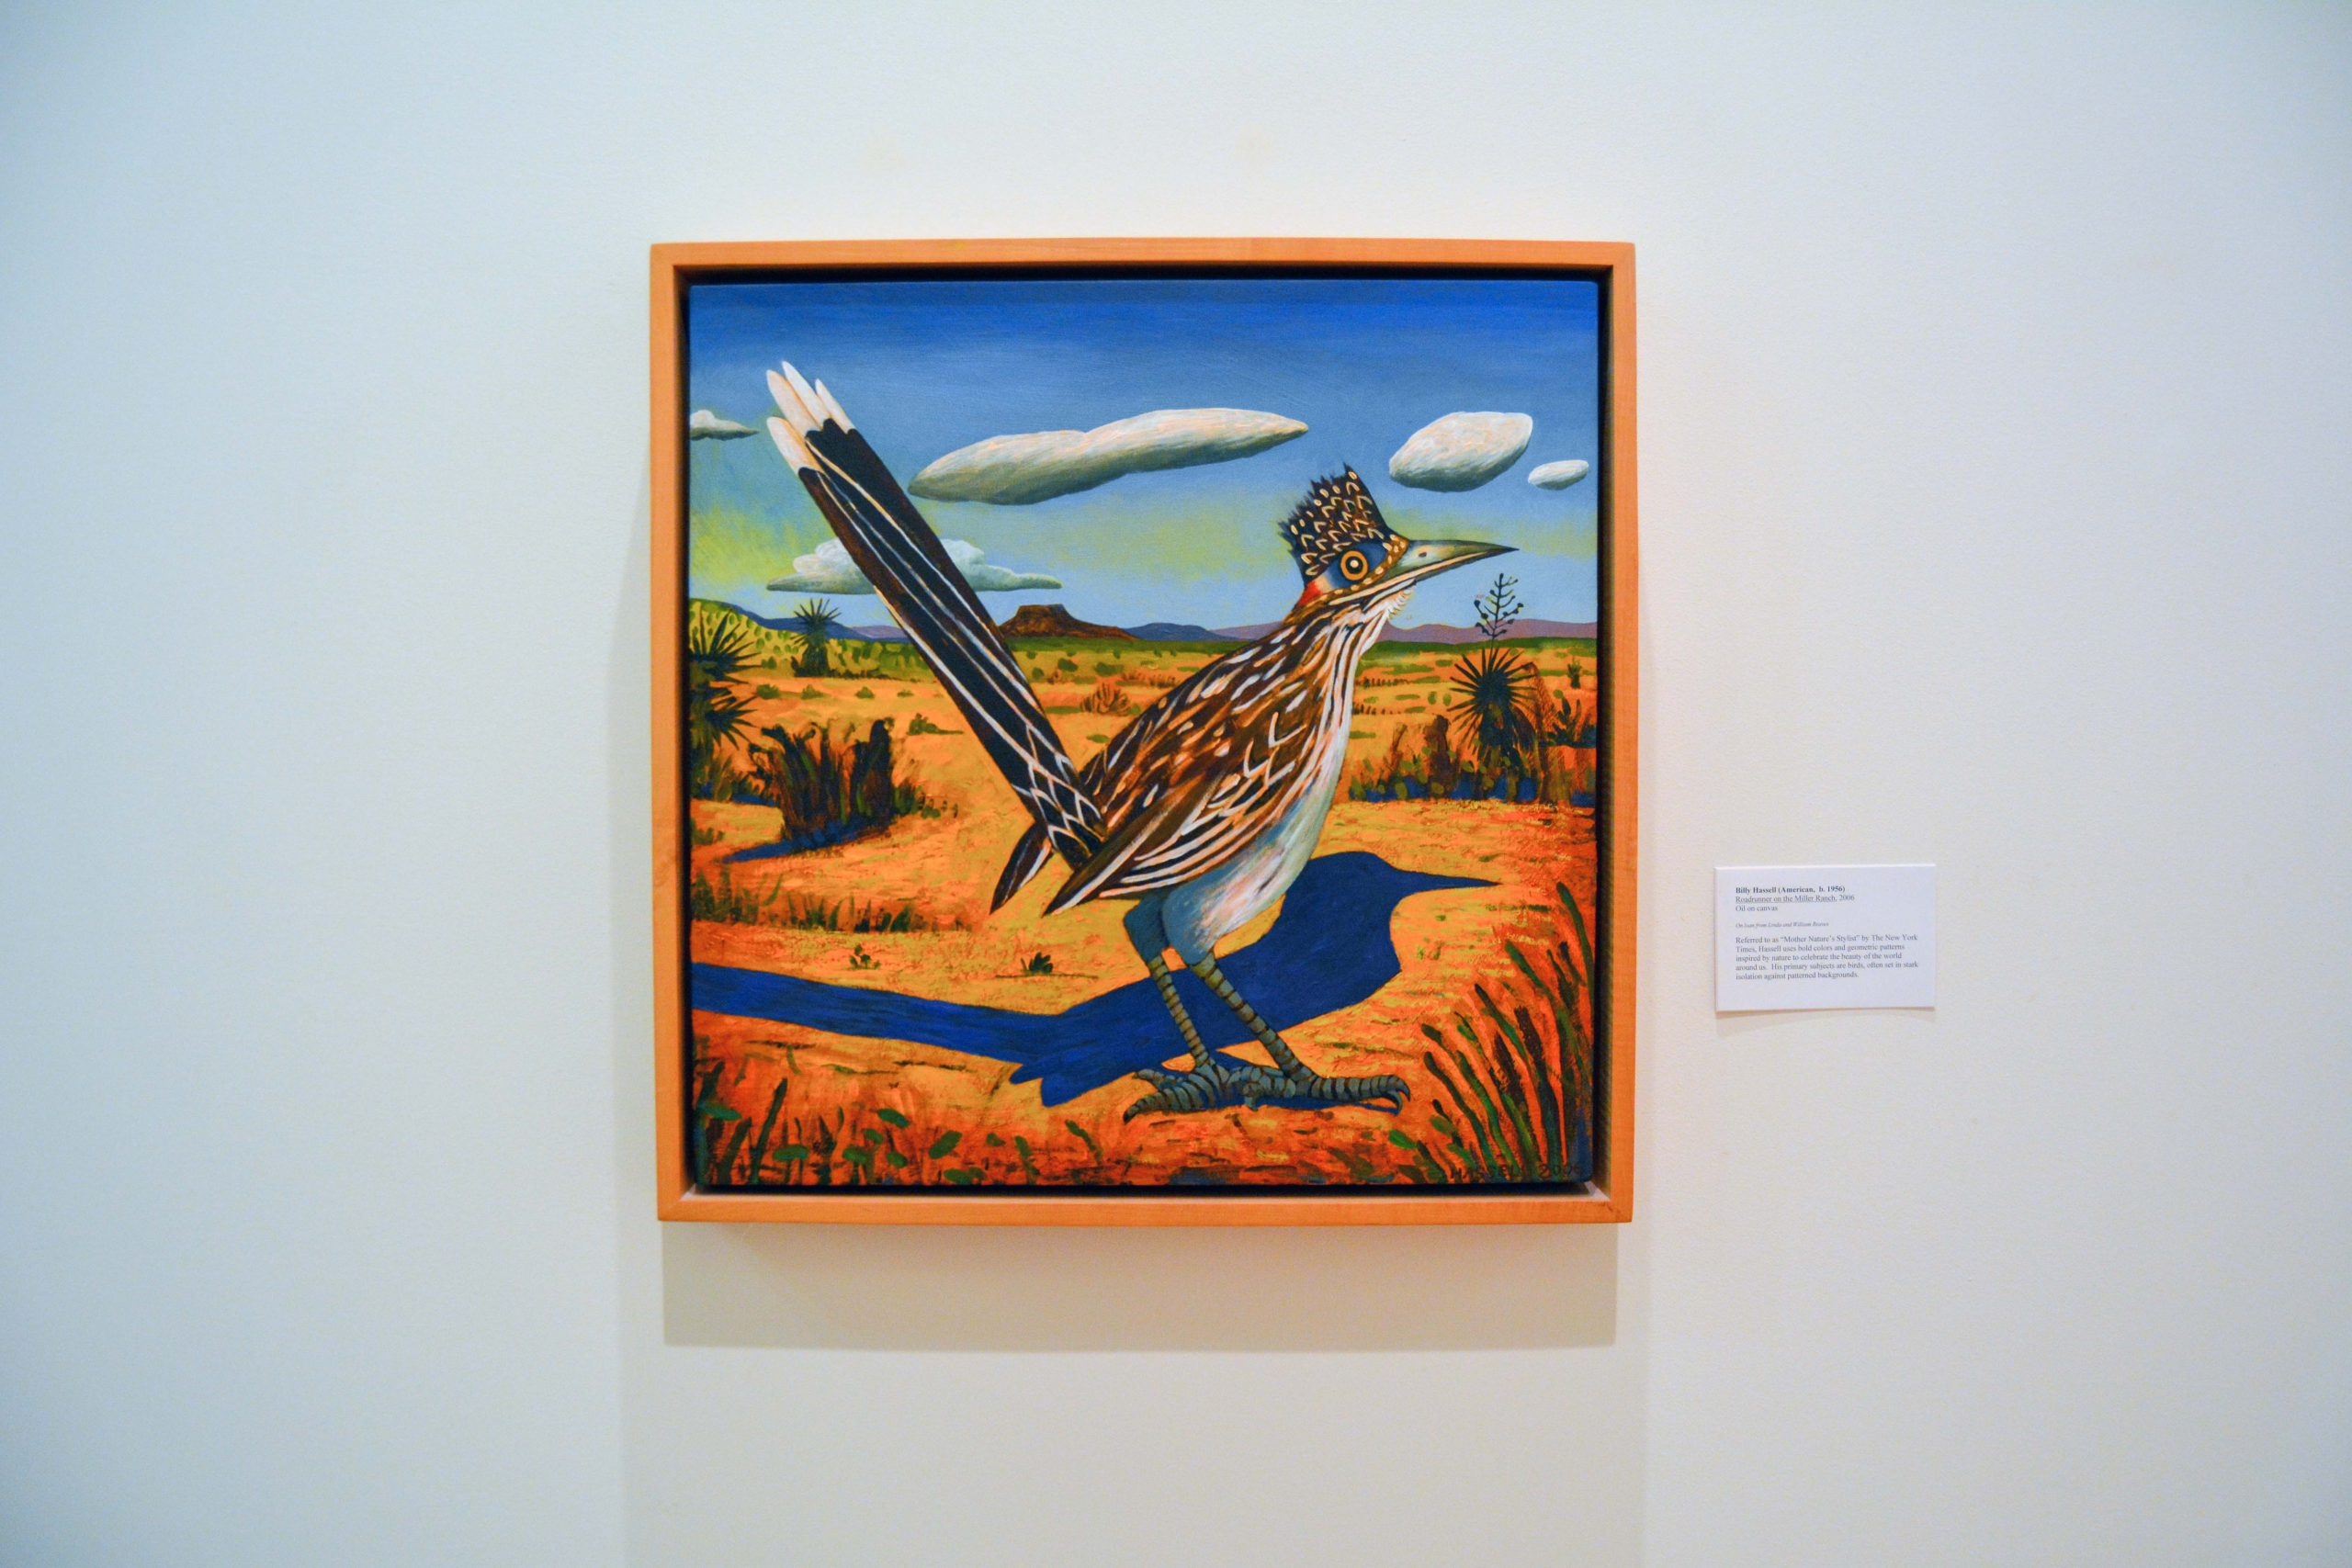 Colorful painting of wide-eyed roadrunner